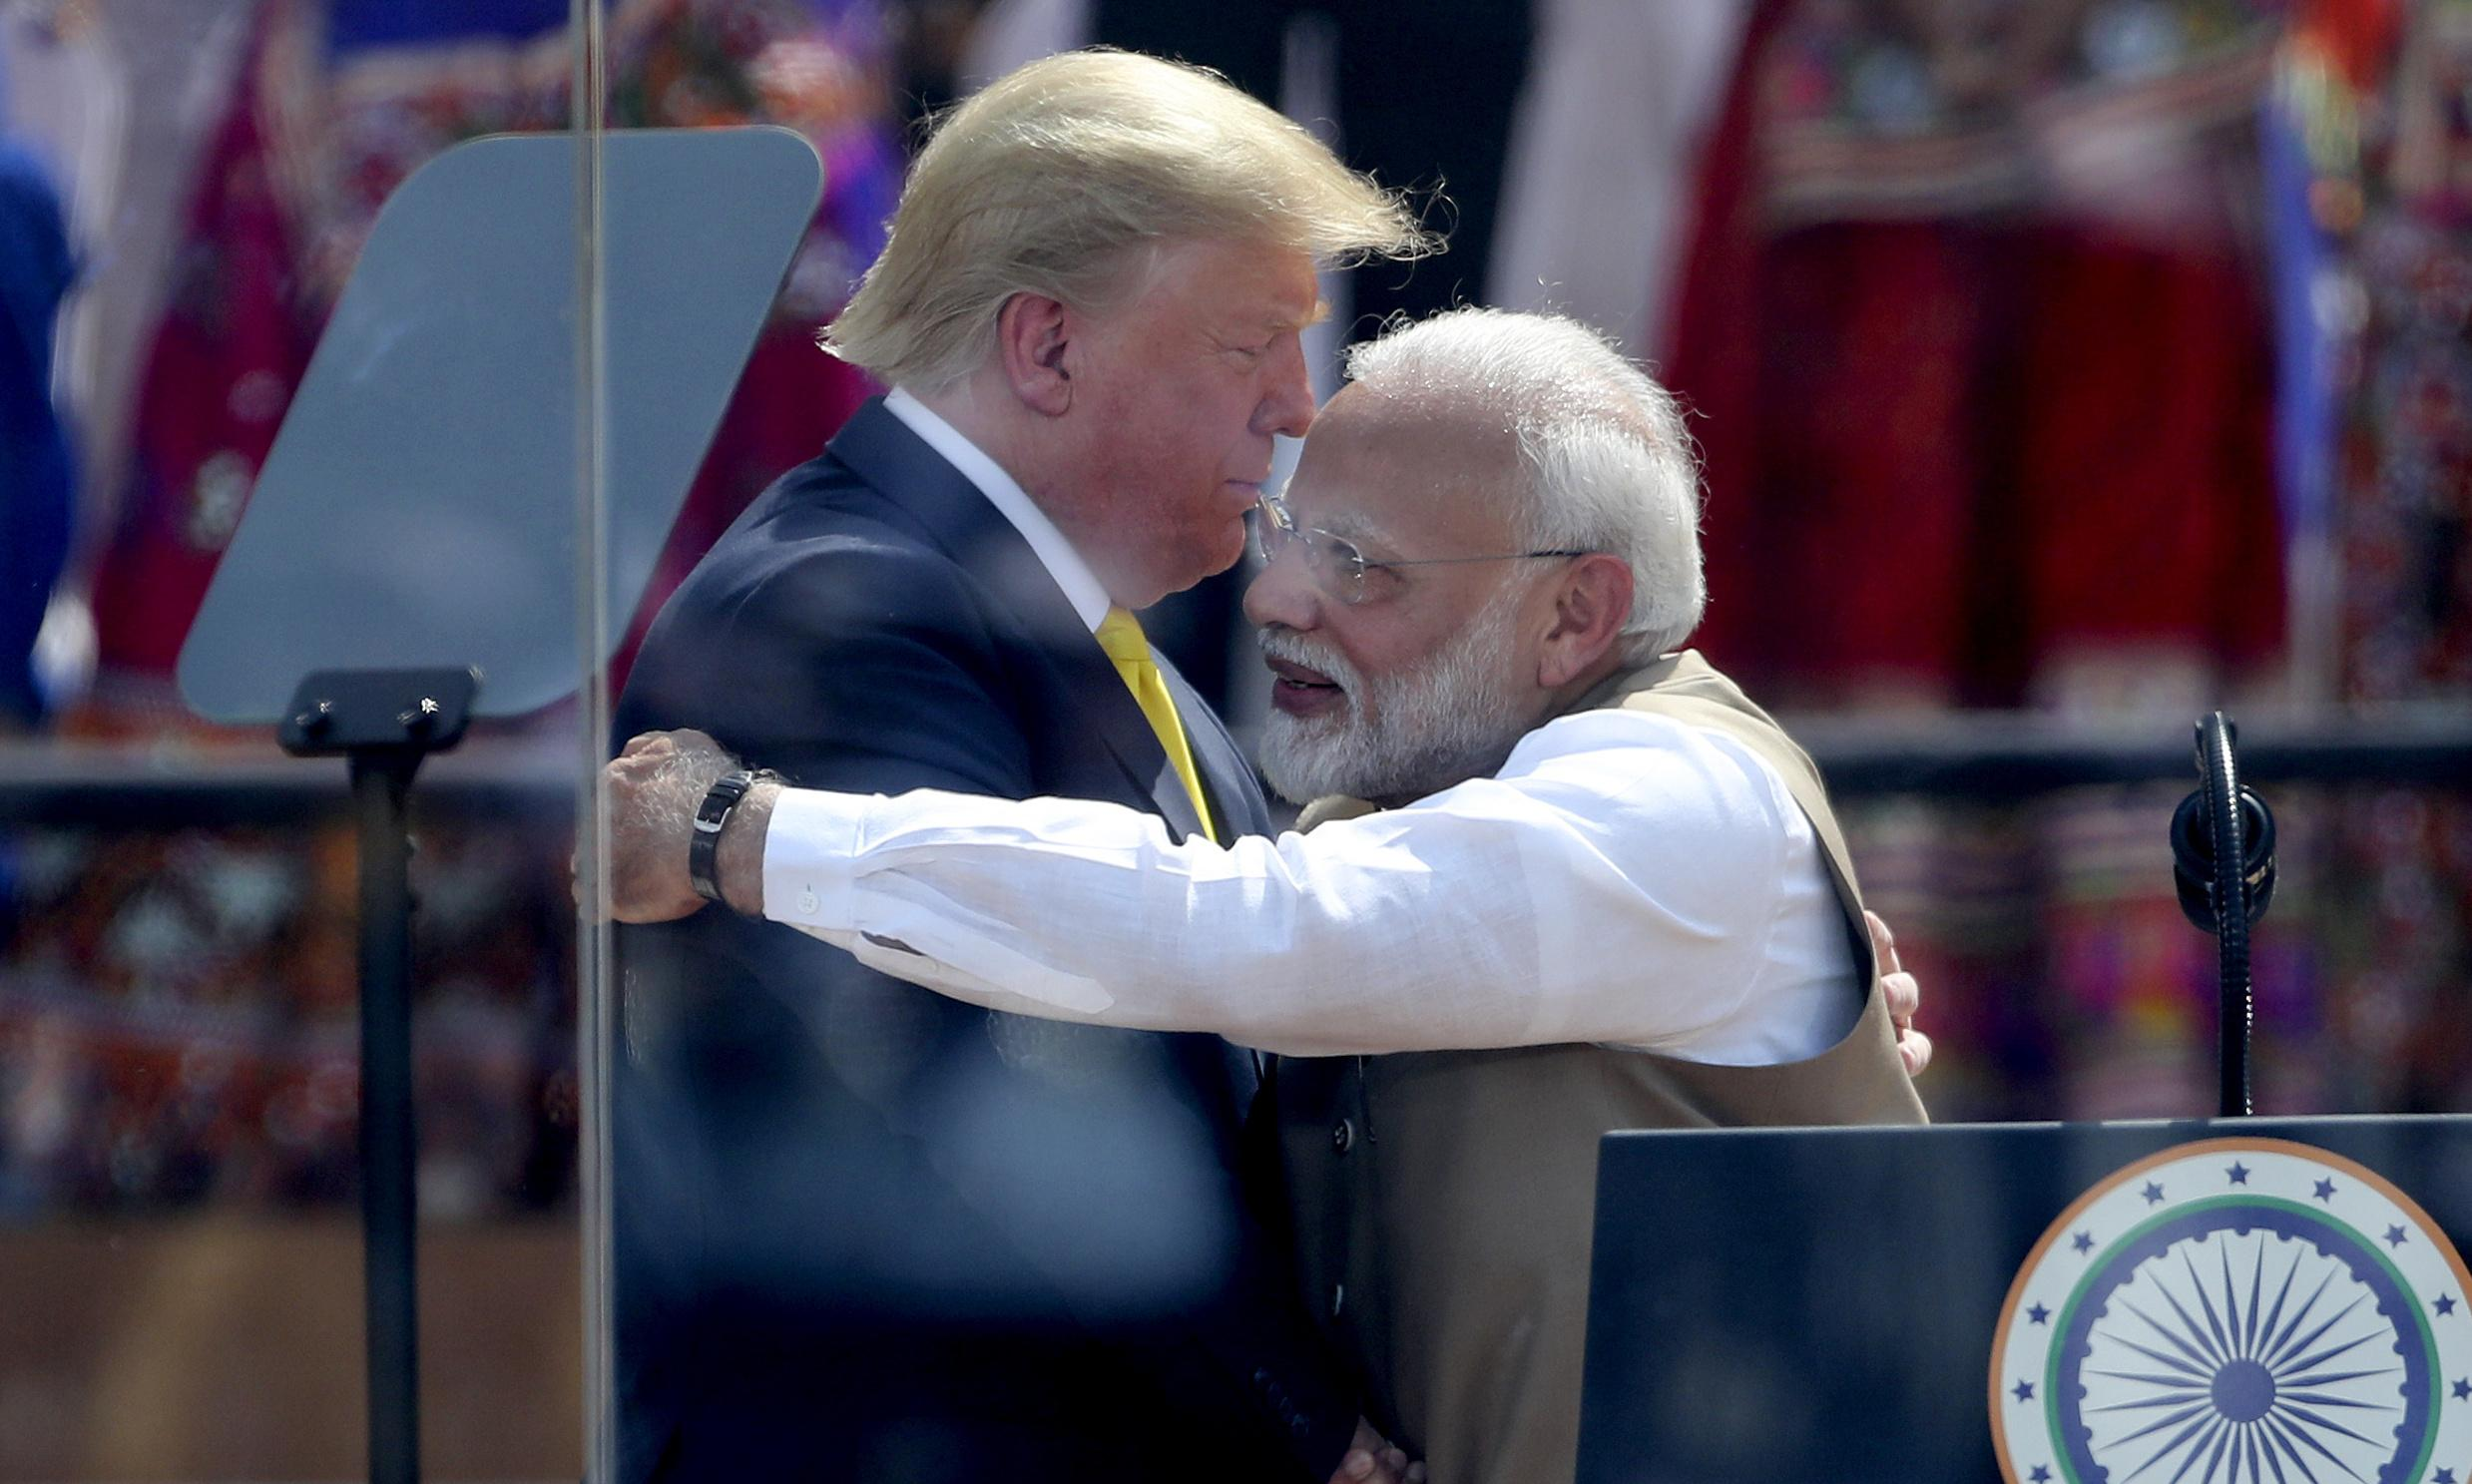 For Trump and Modi, ethnic purity is the purpose of power